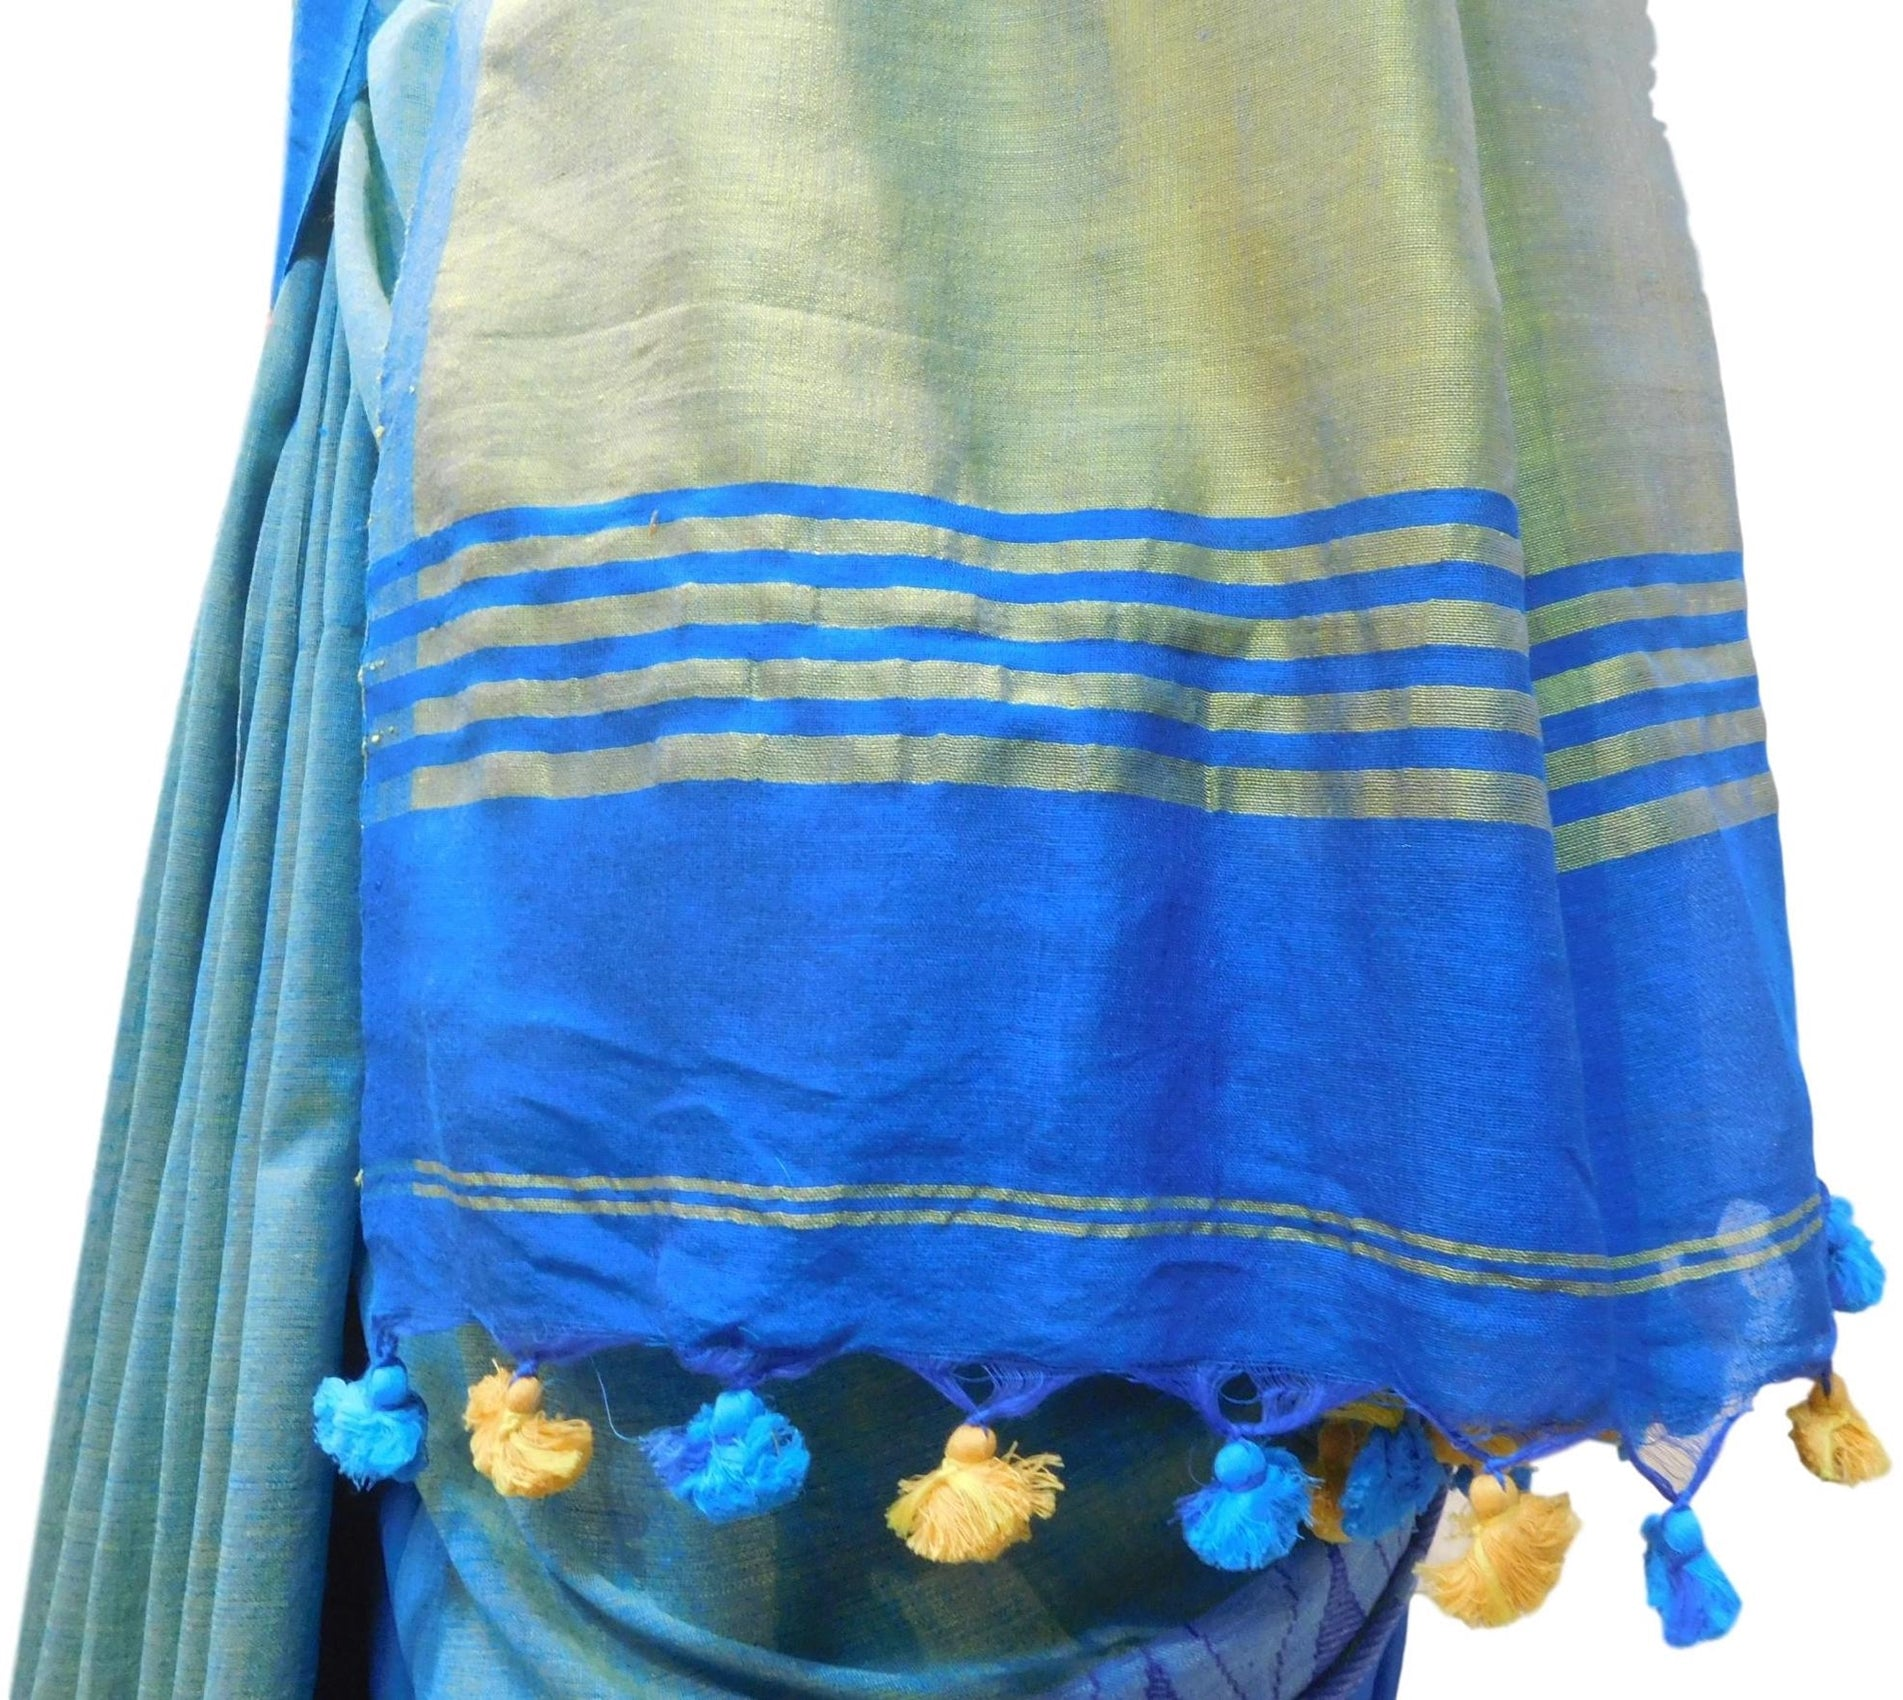 Blue Designer Wedding Partywear Pure Handloom Bengal Bangali Cotton Kolkata Saree Sari E132